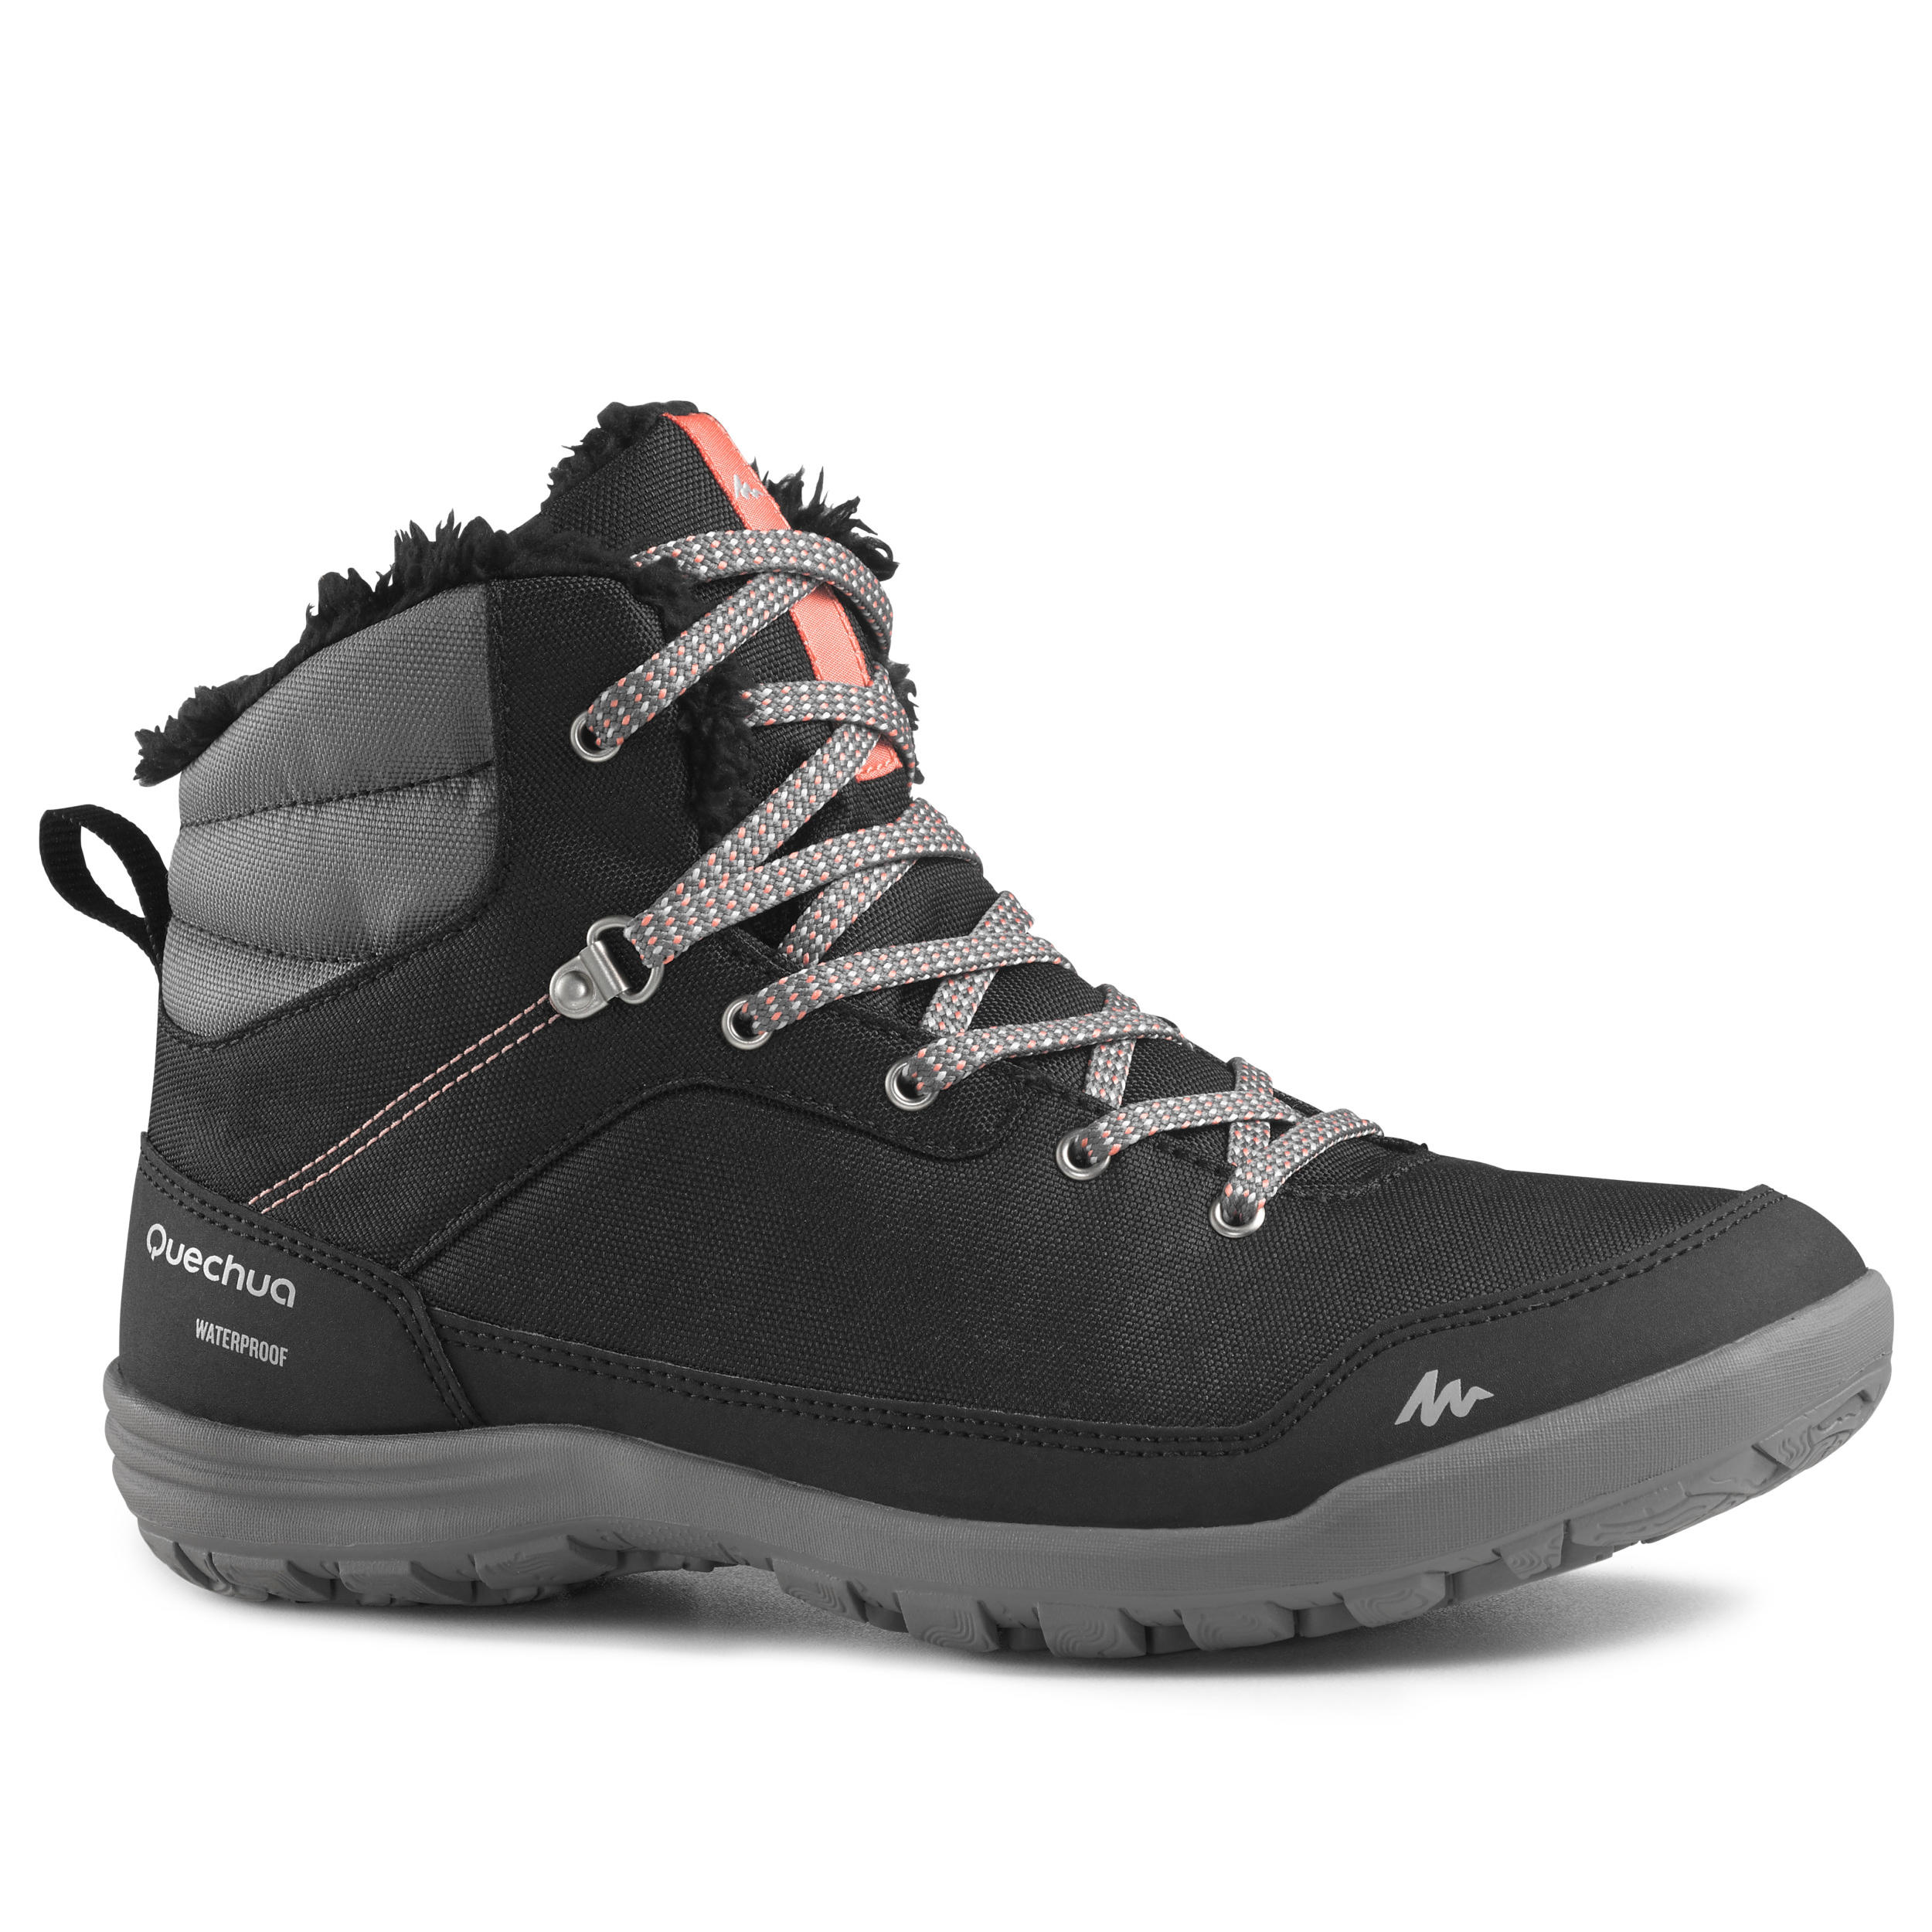 Women's Snow Hiking Shoes SH100 Warm Mid - Black